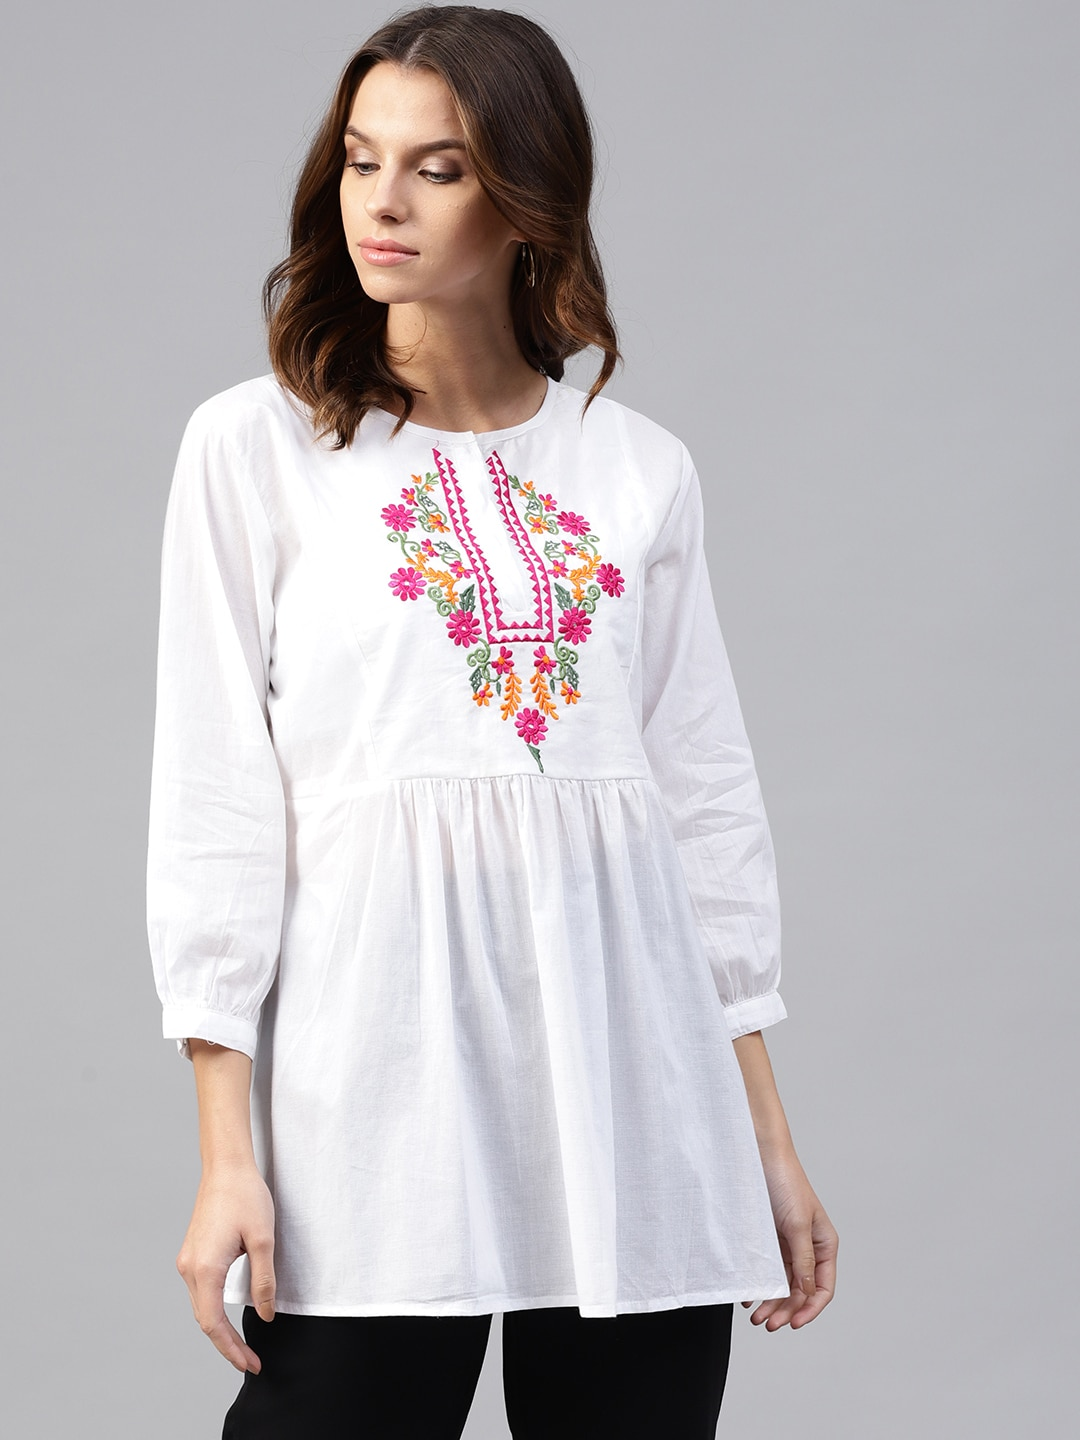 Tunics For Women Buy Tunic Tops Online In India Mom N Bab Long Pants Blue Polkadot Size 6t